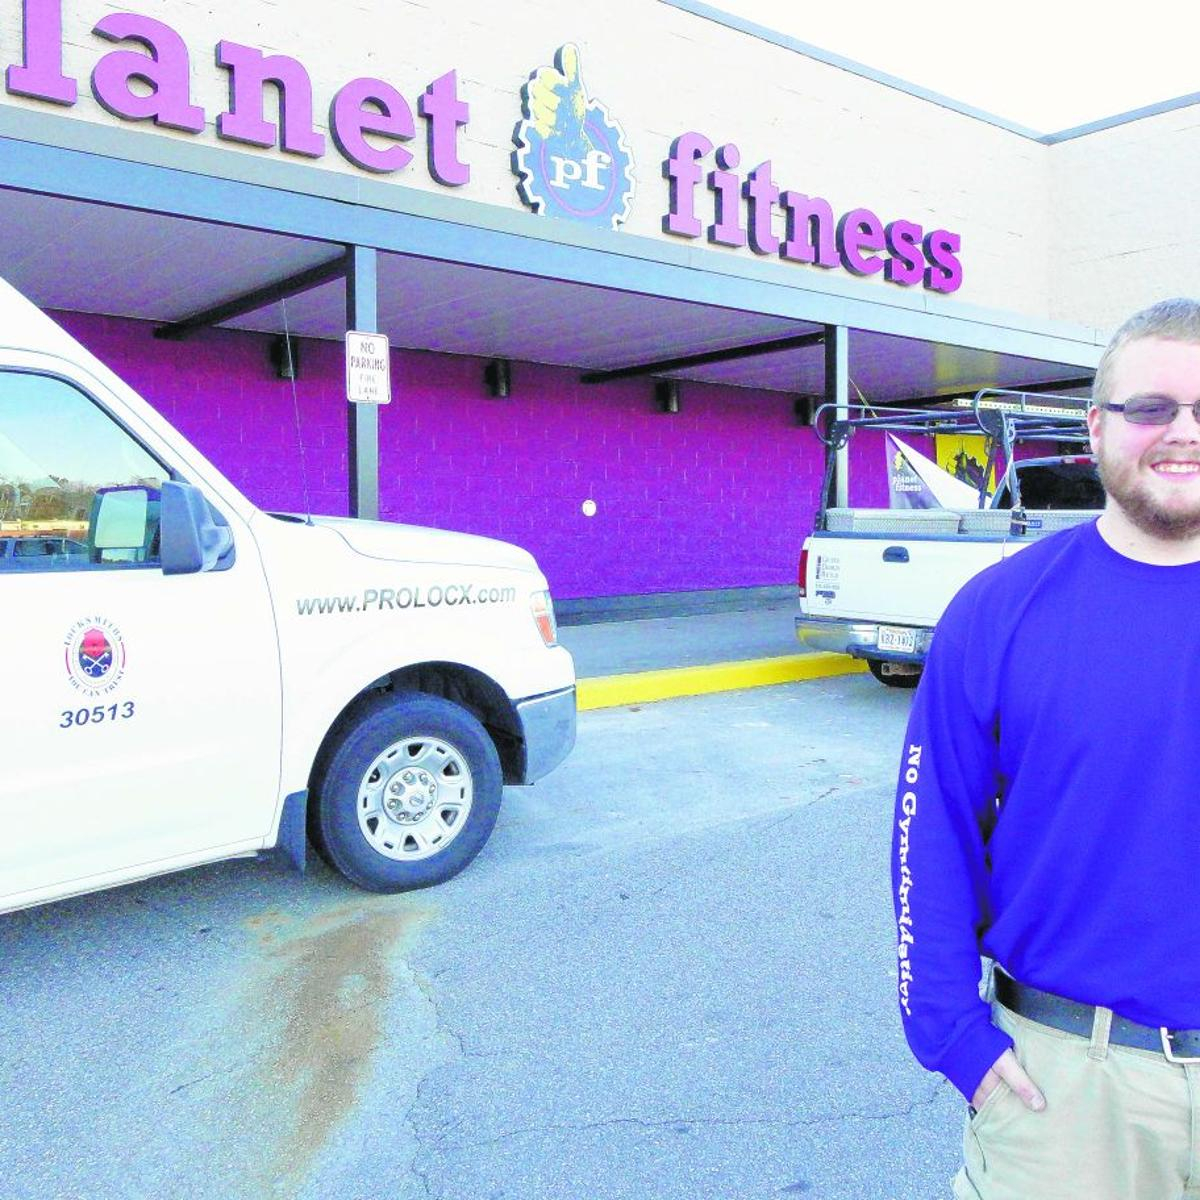 Planet Fitness To Open In Martinsville Business News Martinsvillebulletin Com